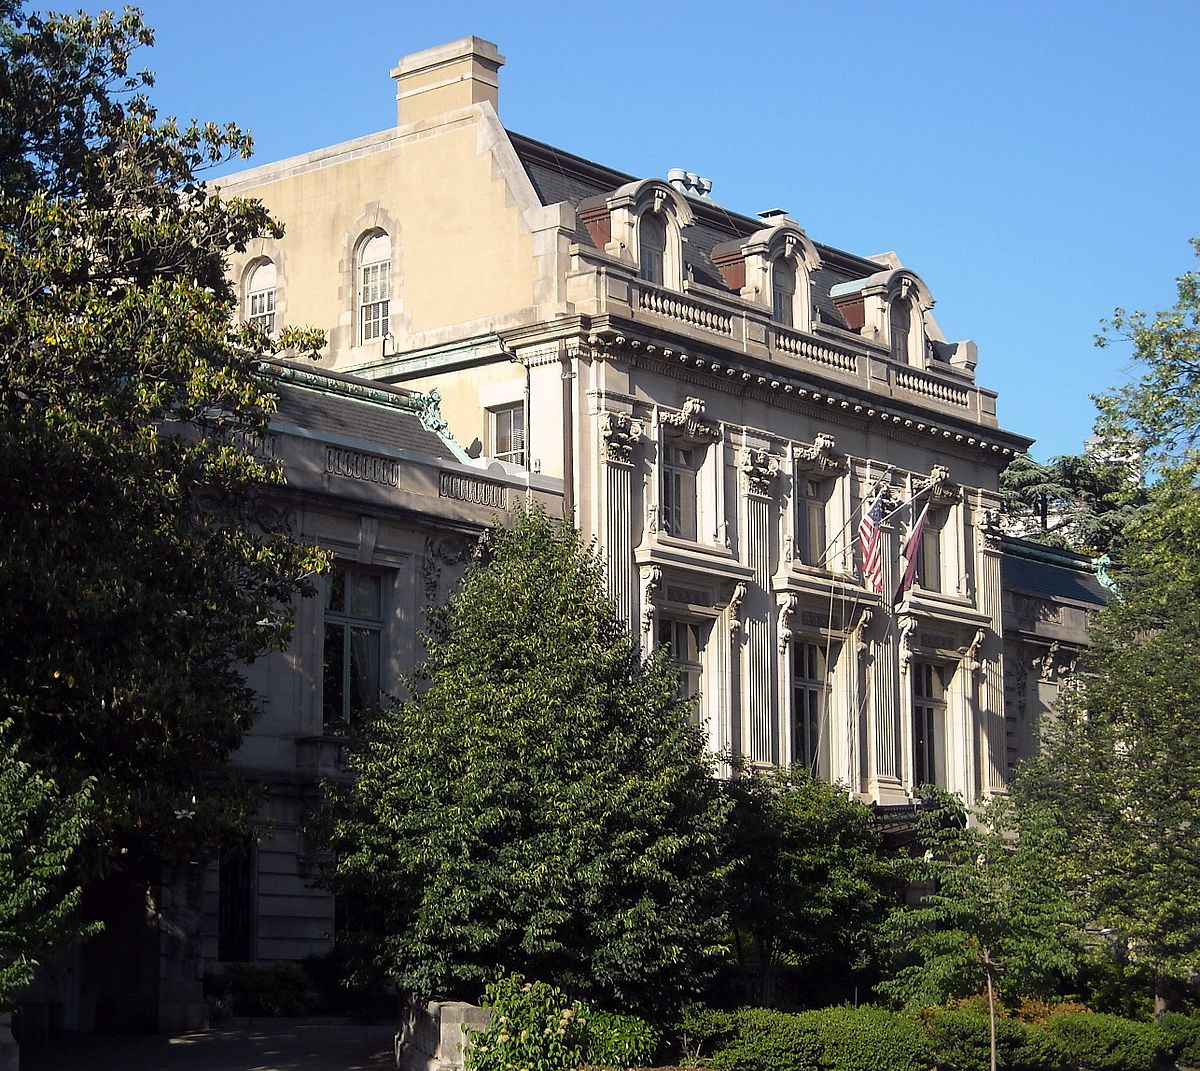 Art Places In Washington Dc: Townsend House (Washington, D.C.)